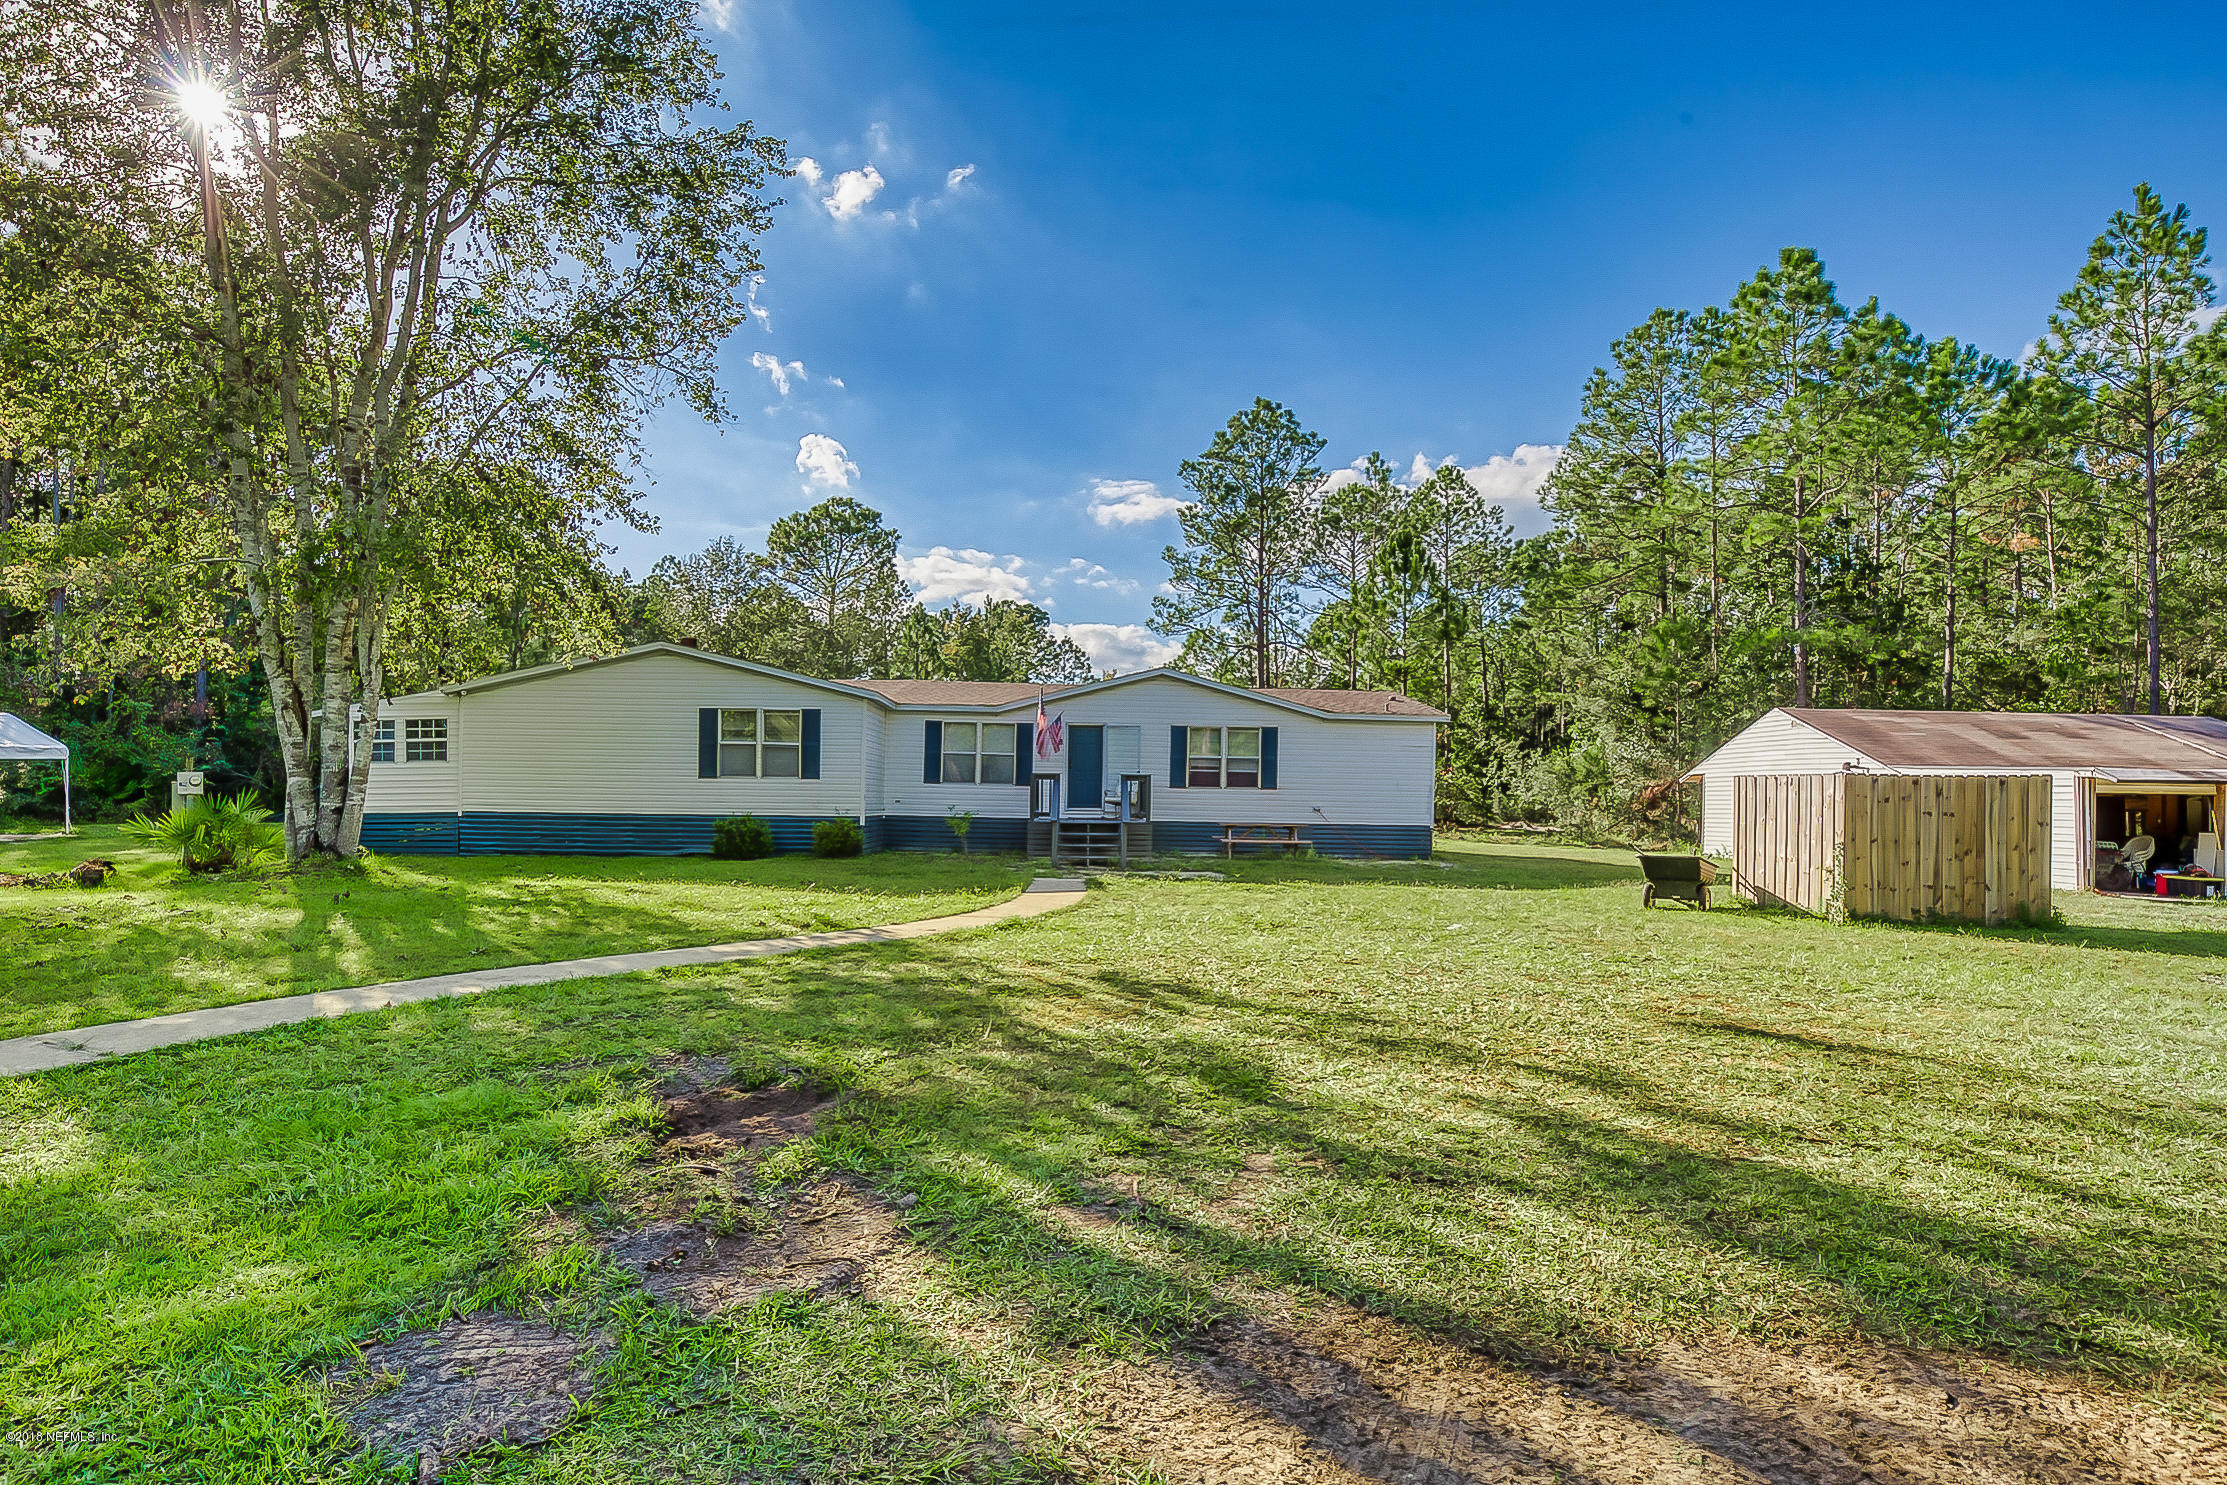 5412 WANDERING, JACKSONVILLE, FLORIDA 32219, 4 Bedrooms Bedrooms, ,2 BathroomsBathrooms,Residential - mobile home,For sale,WANDERING,965200